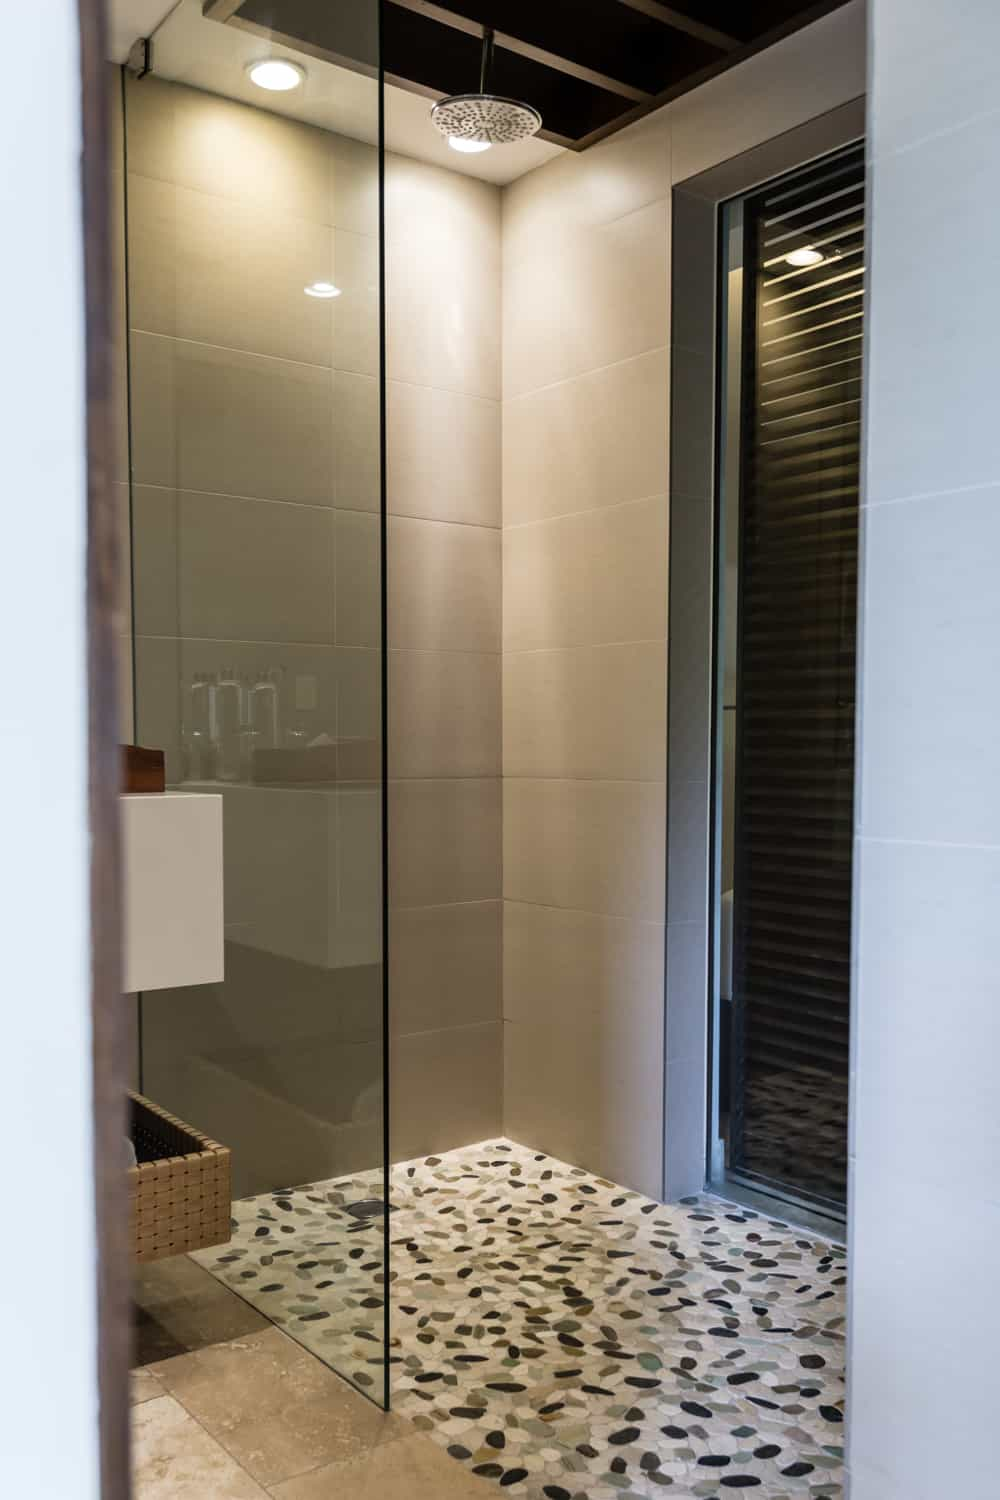 Luxury walk-in bathroom for wedding guests in Tabacon standard room.